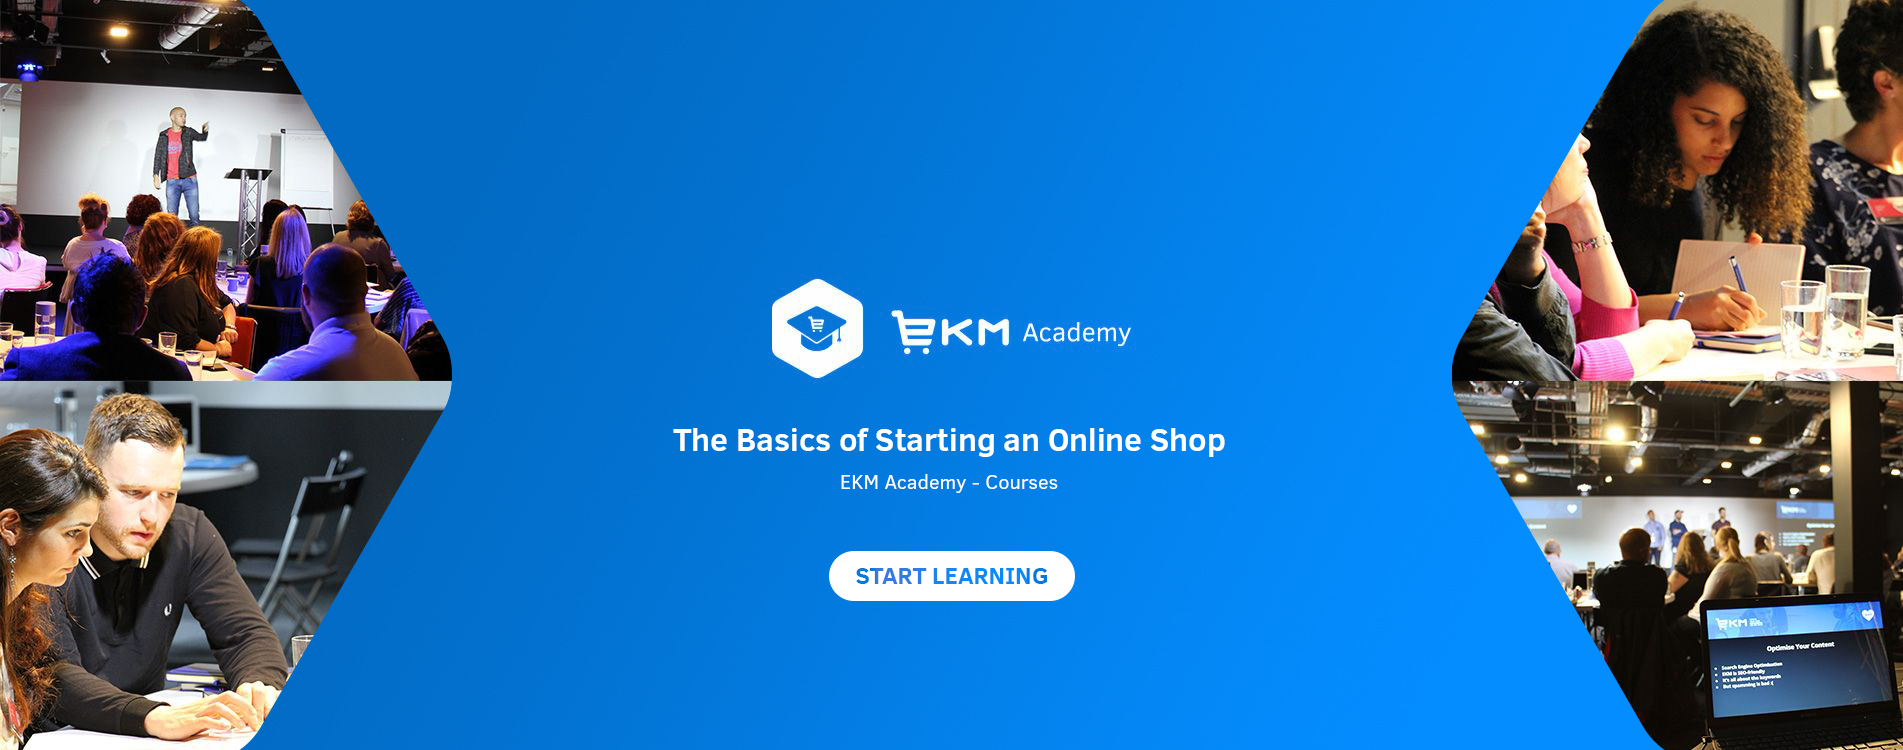 The Basics of Starting an Online Shop EKM Academy Course